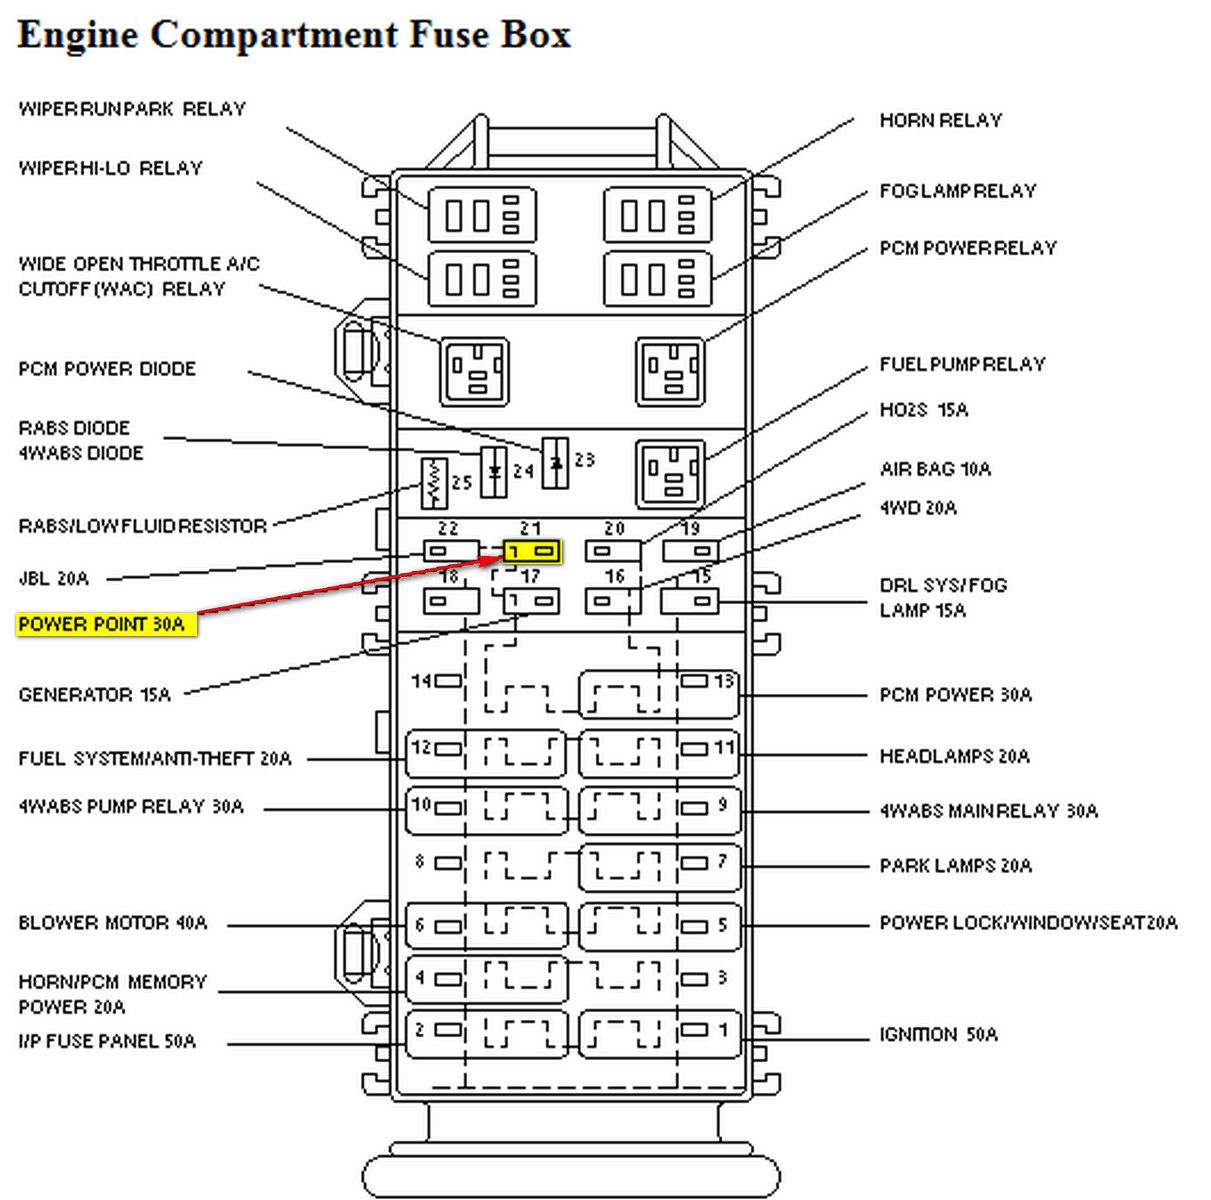 8a55967da7ae1bd251b795845886bd24 2002 ford ranger fuse diagram 1997 ford ranger fuse box diagram 2012 ford edge fuse box diagram at aneh.co